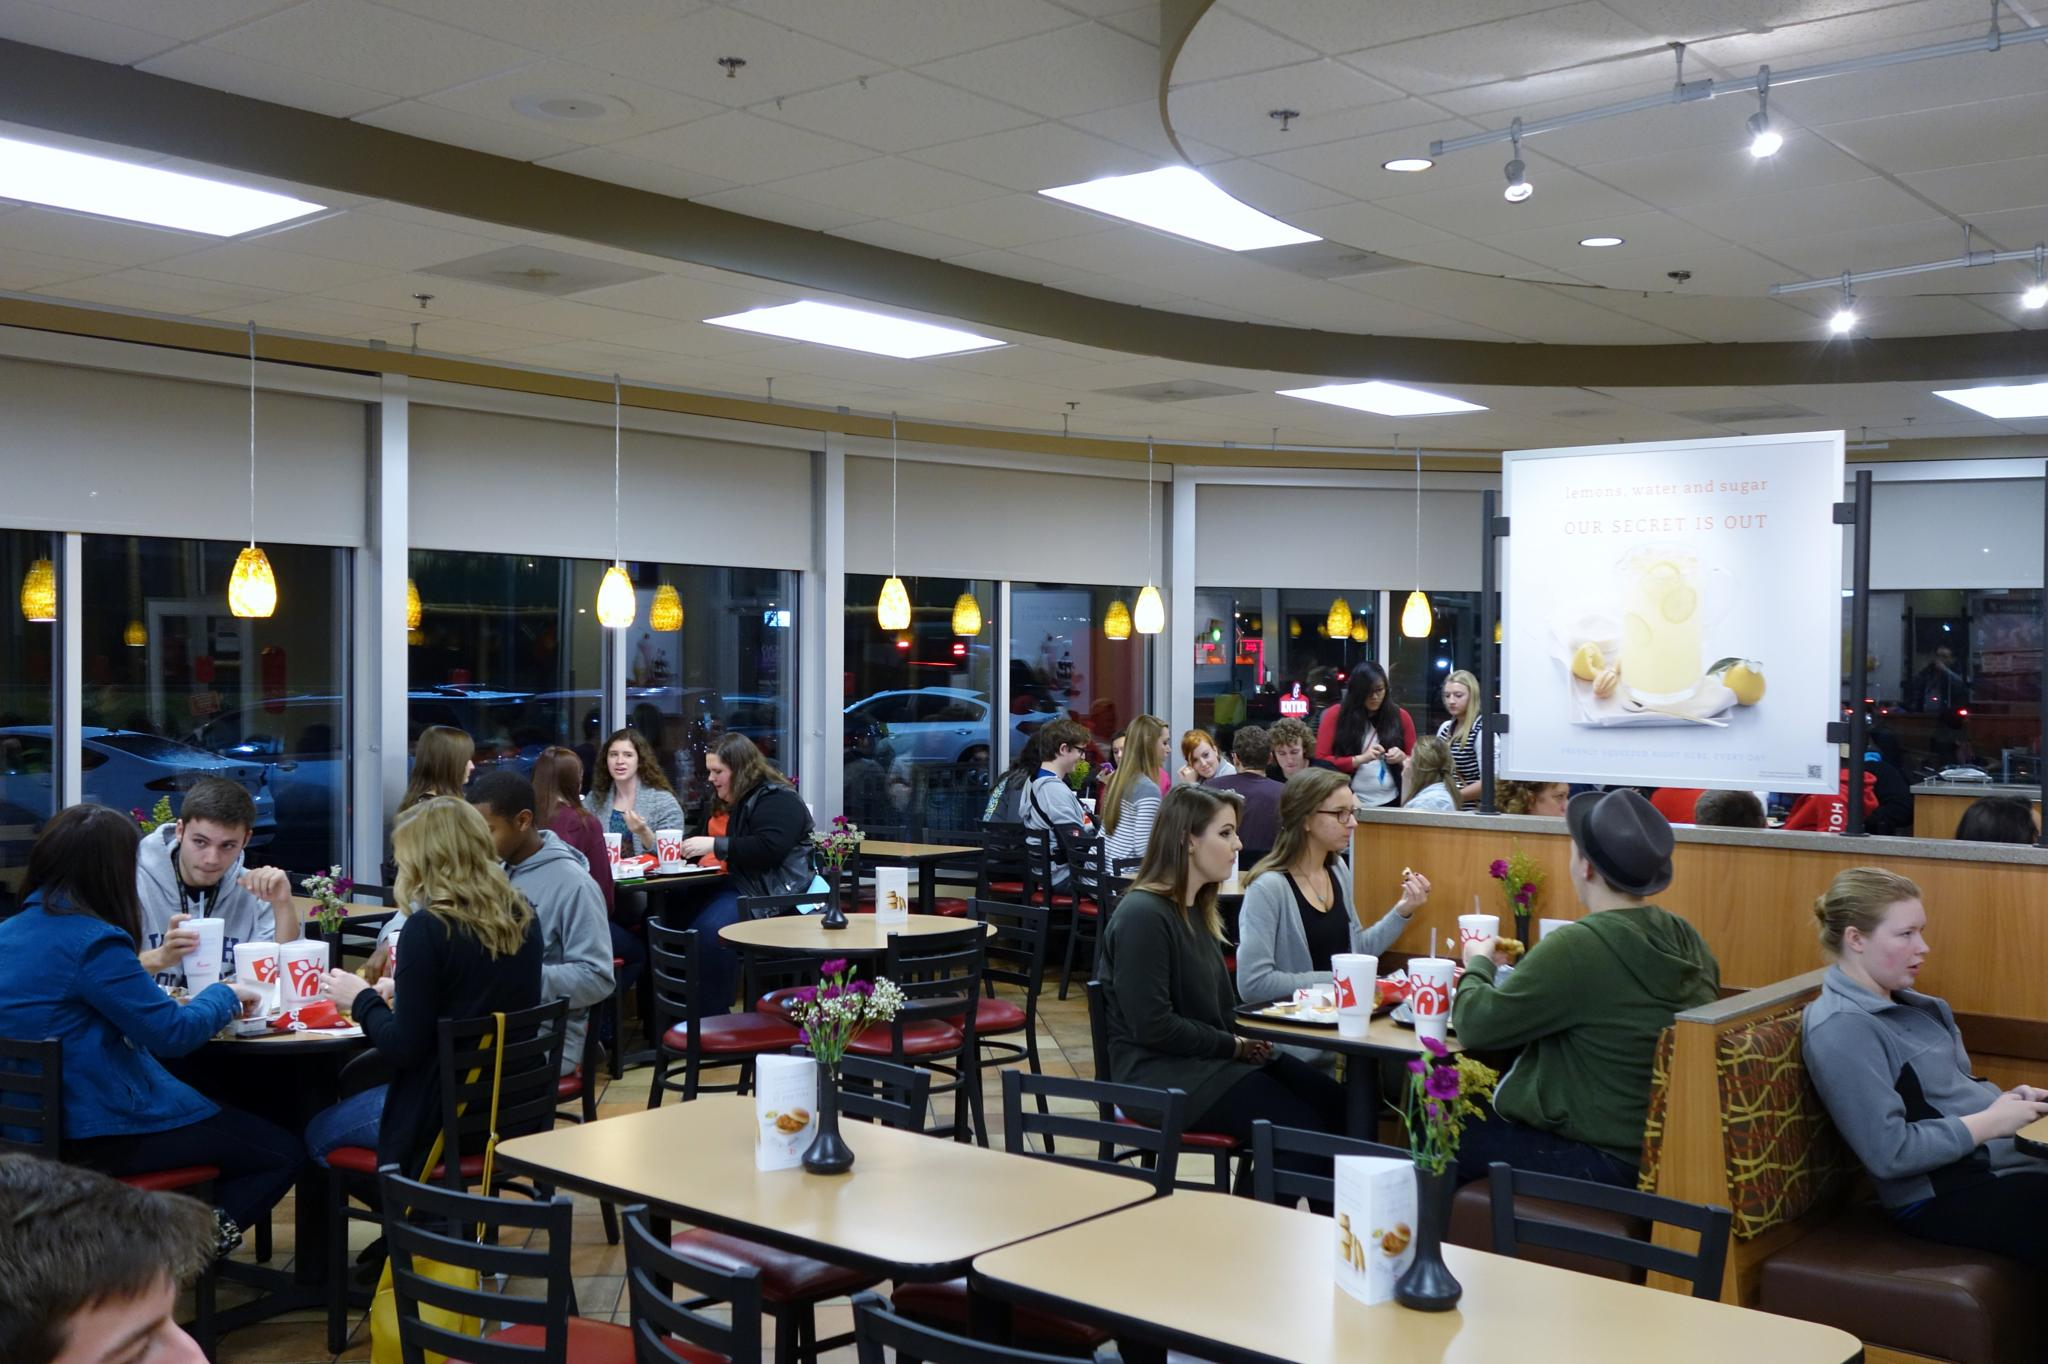 College Night At Chick-fil-a by Gary Cole